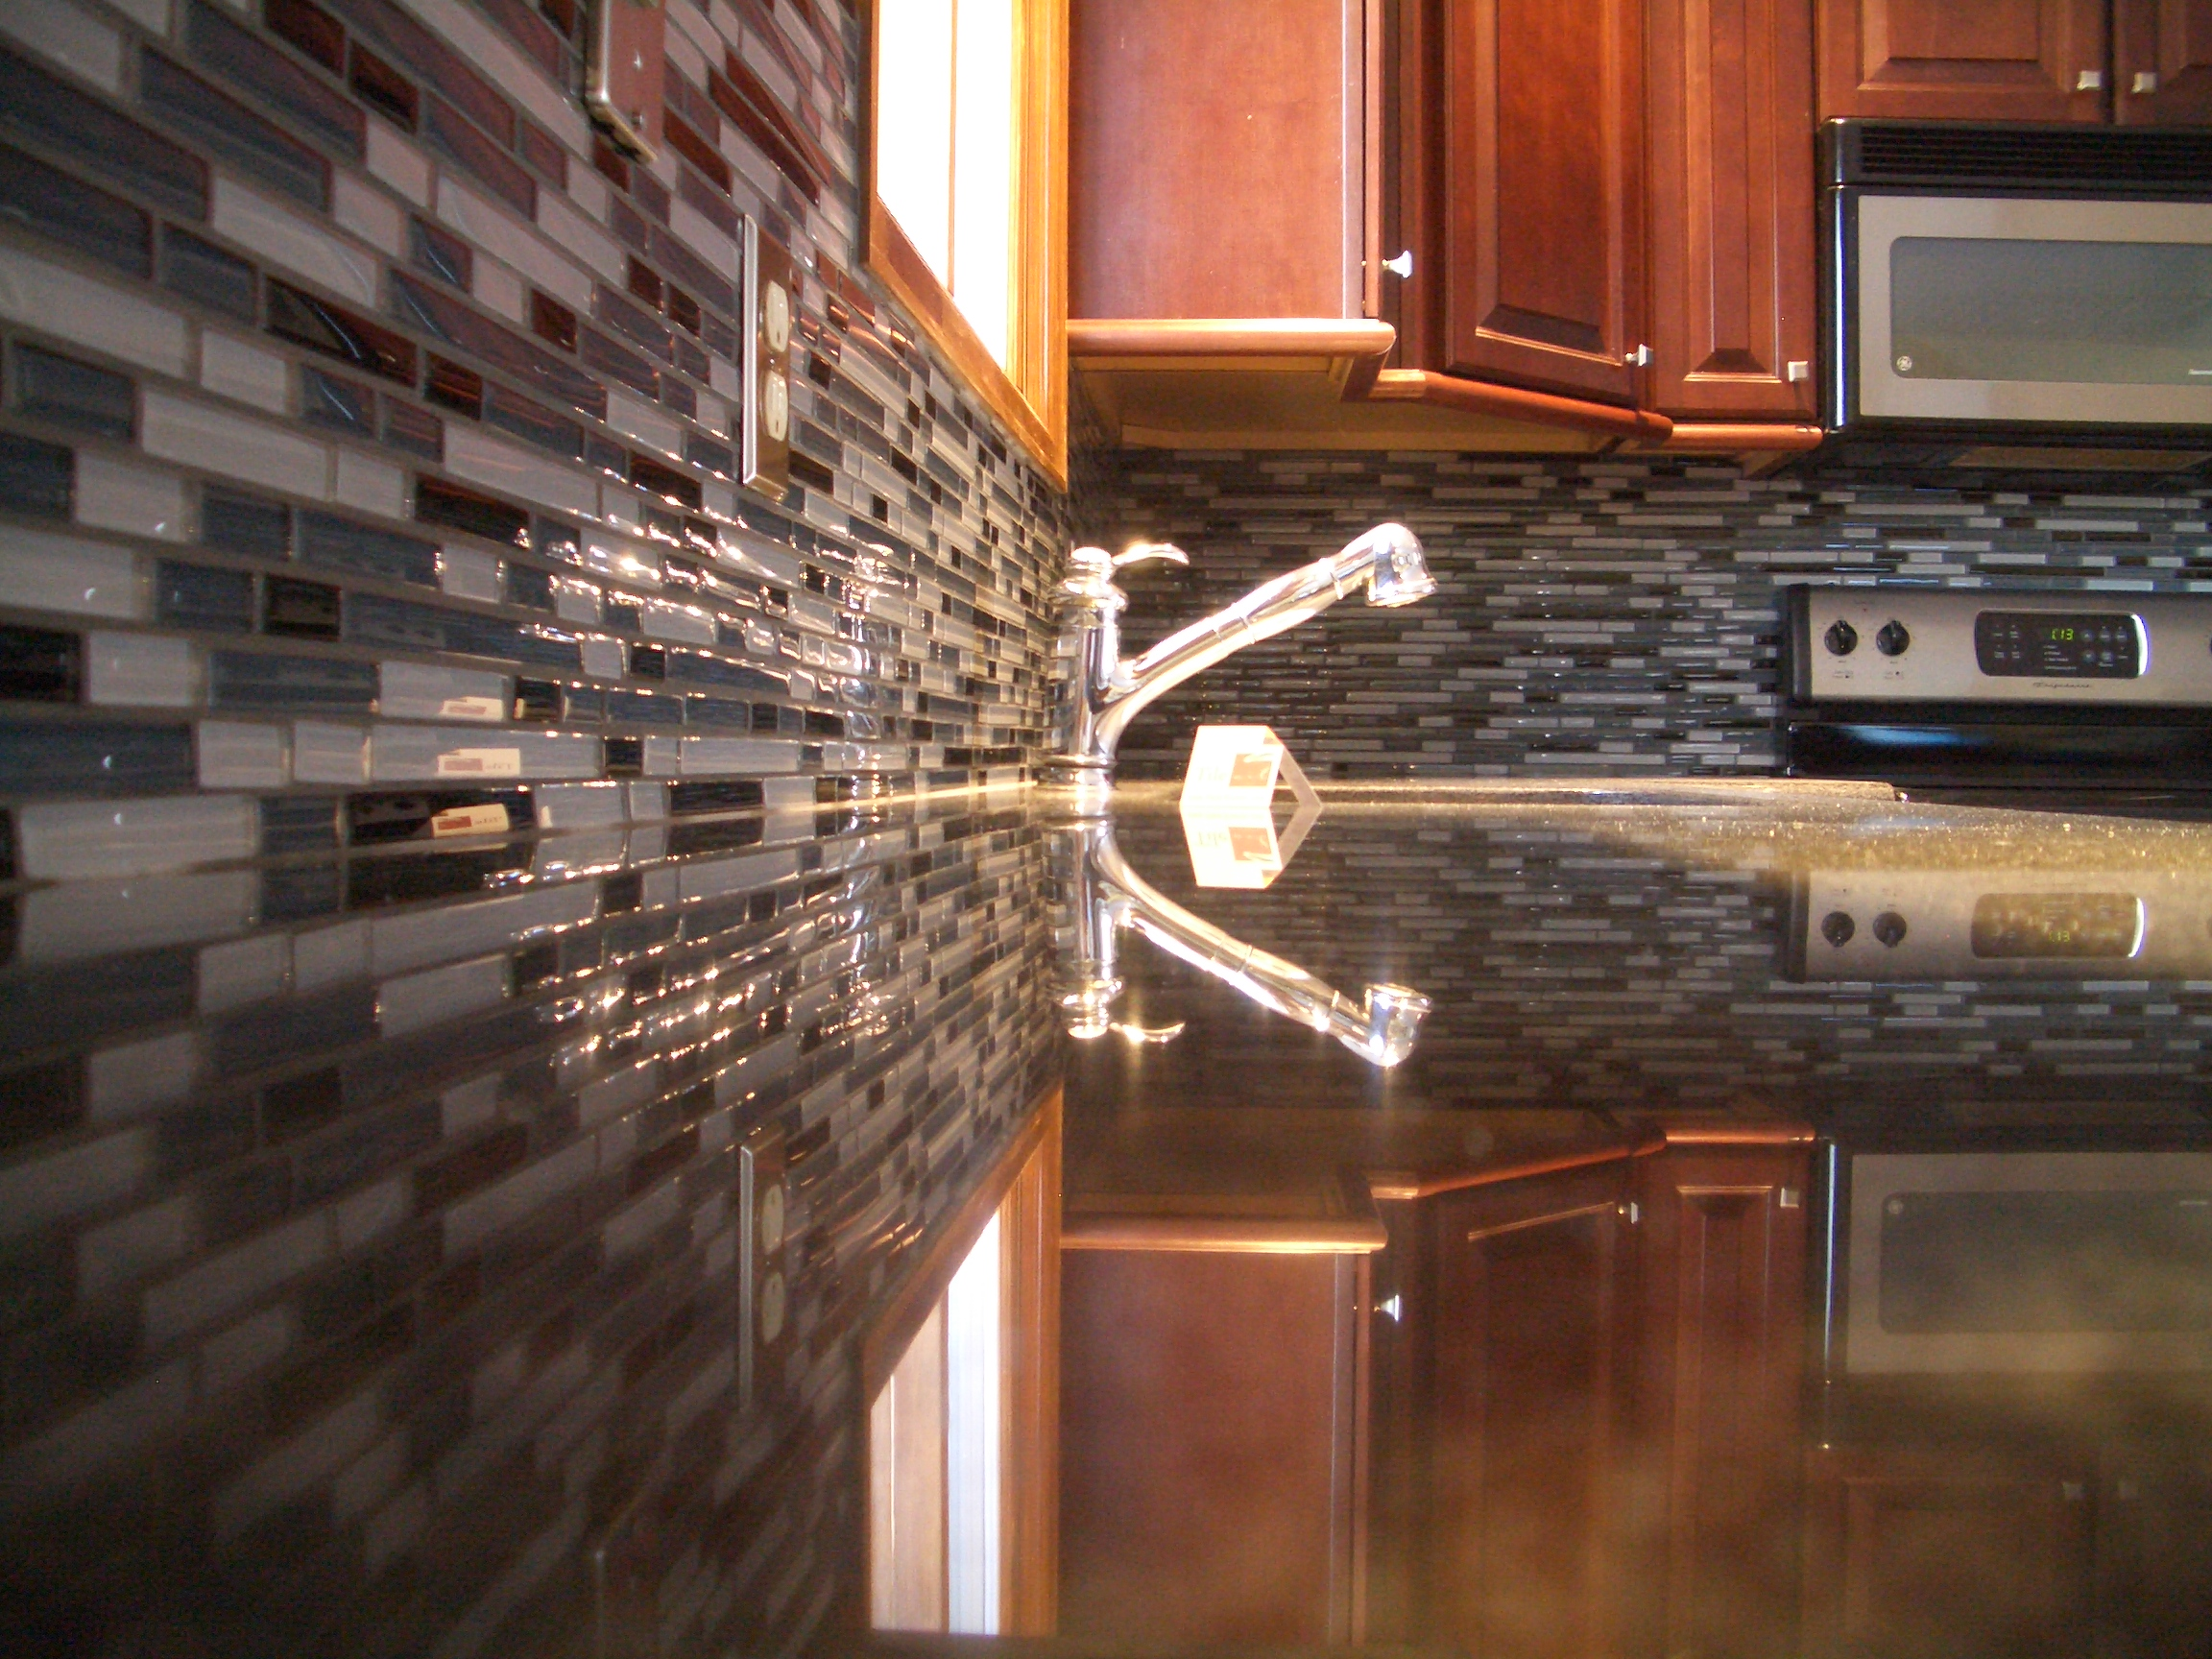 glass tile kitchen backsplash in fort collins kitchen backsplash tile Glass tile kitchen backsplash in Fort Collins